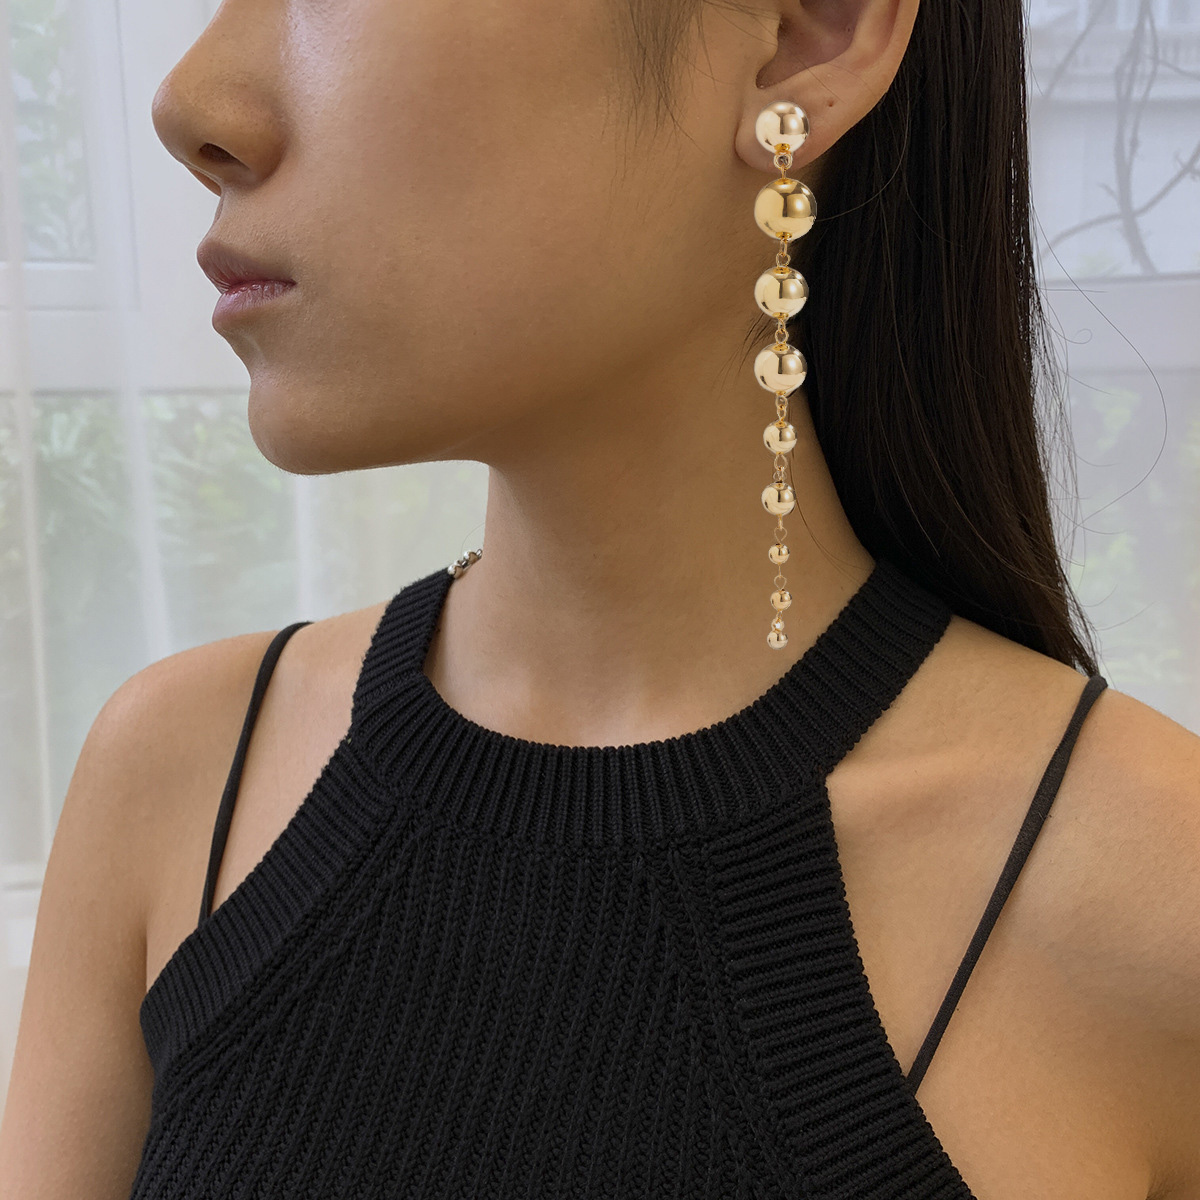 Copper Coated Beads Detail Gold Earring Set